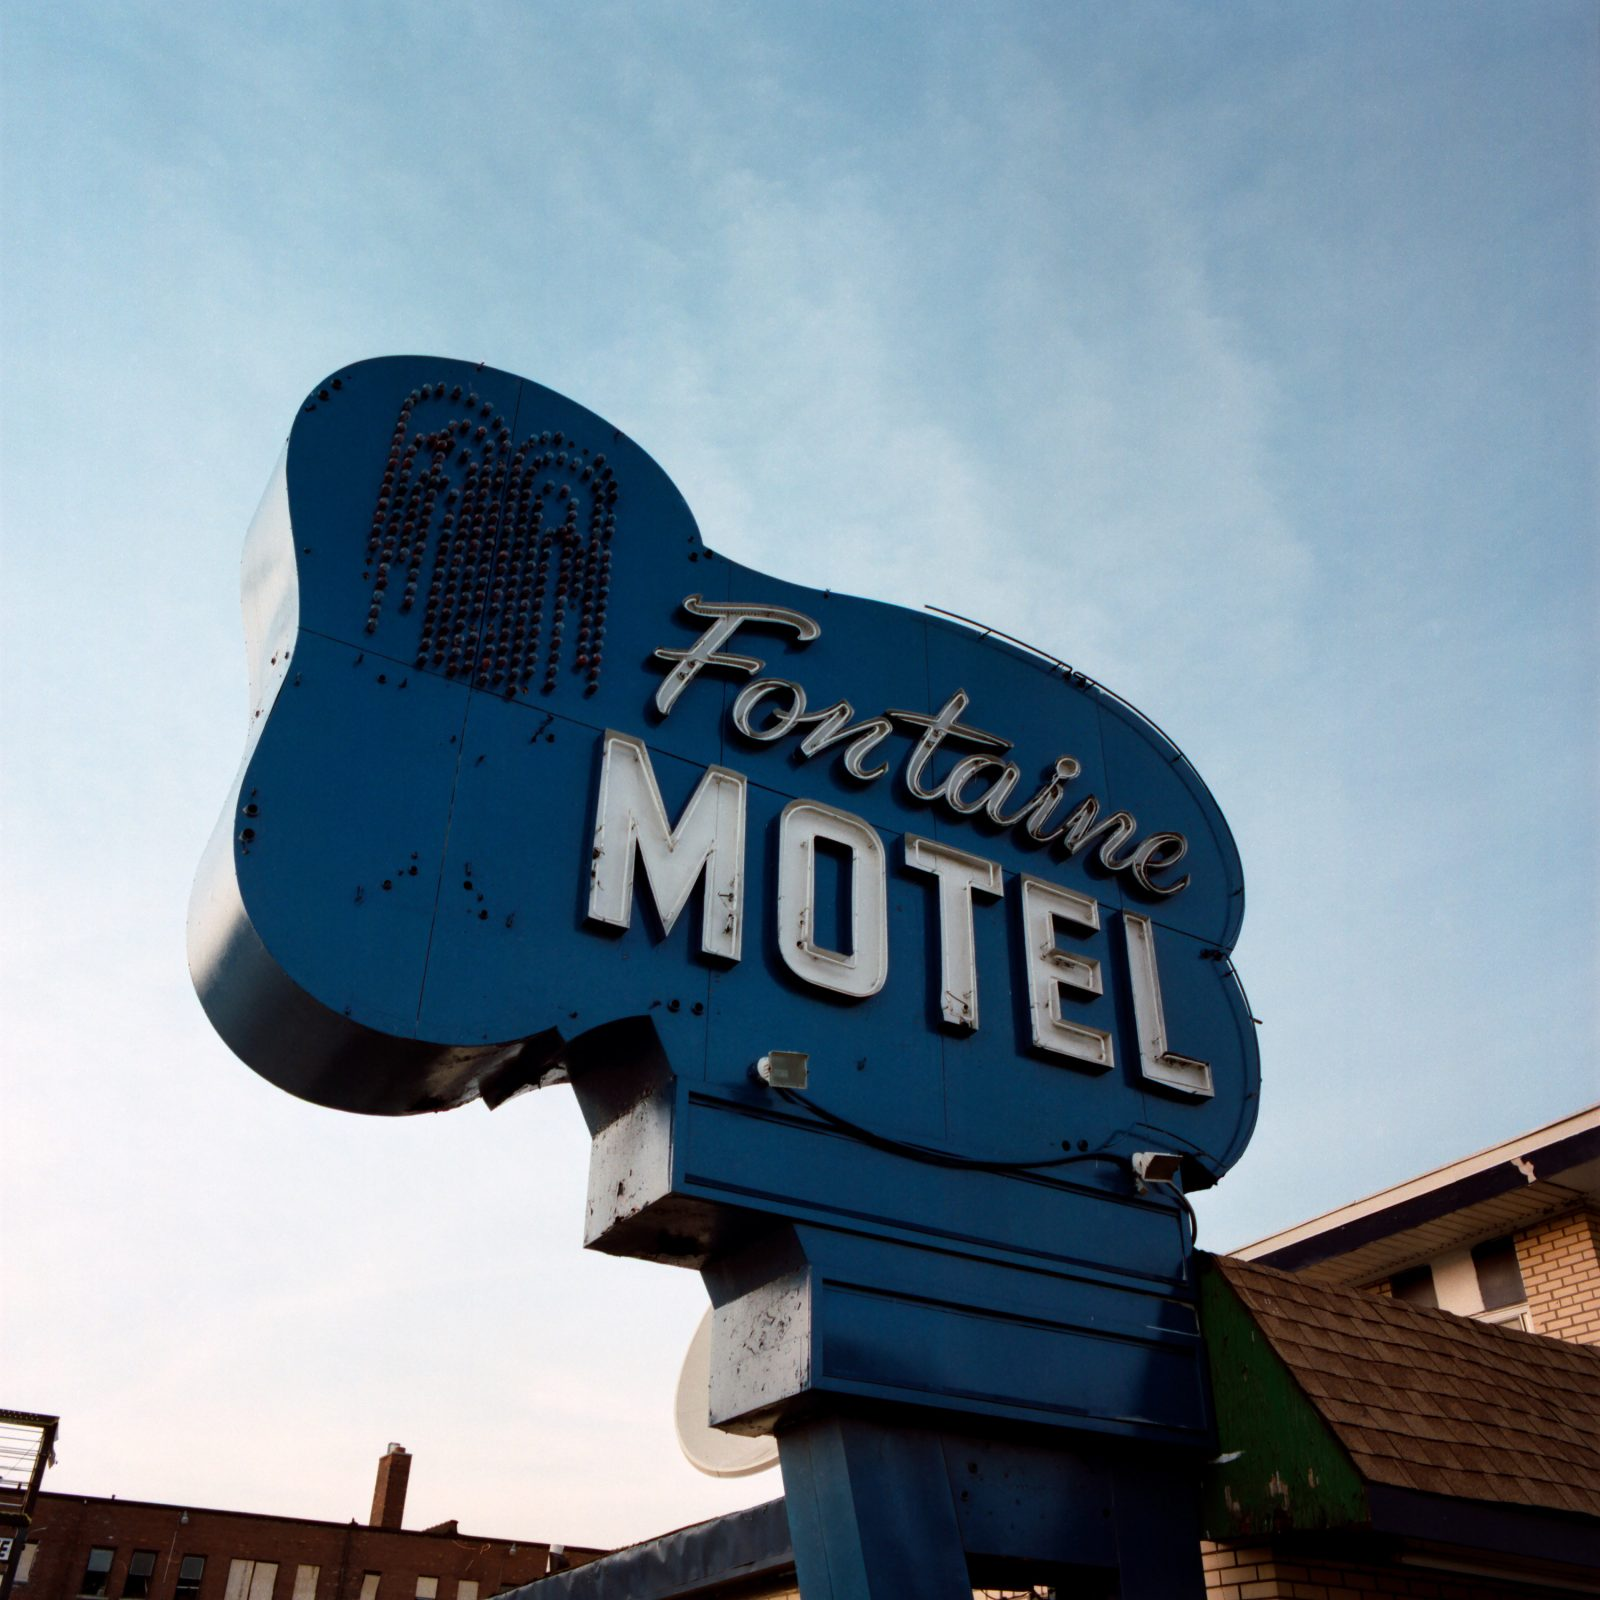 Fontaine Motel sign. Highland Park, Michigan.